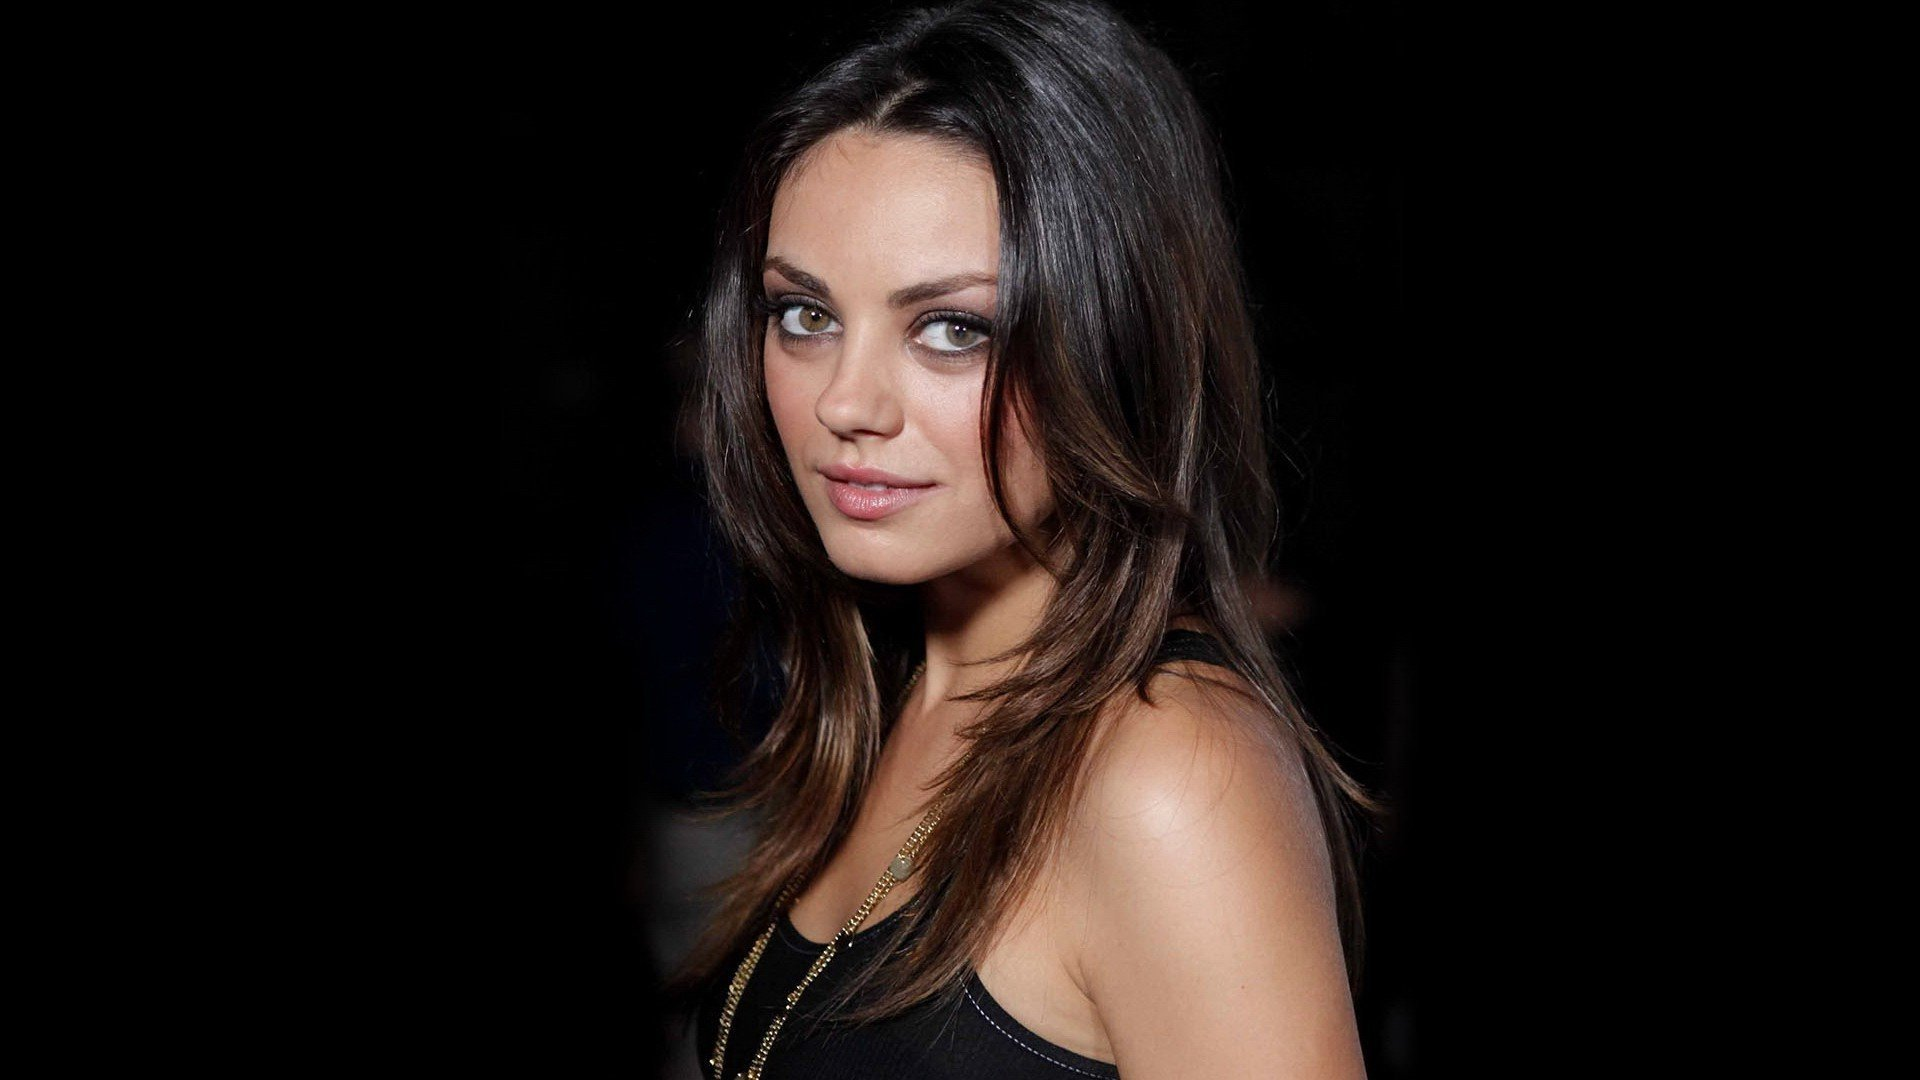 Mila kunis high quality wallpics - High resolution wallpaper celebrity ...